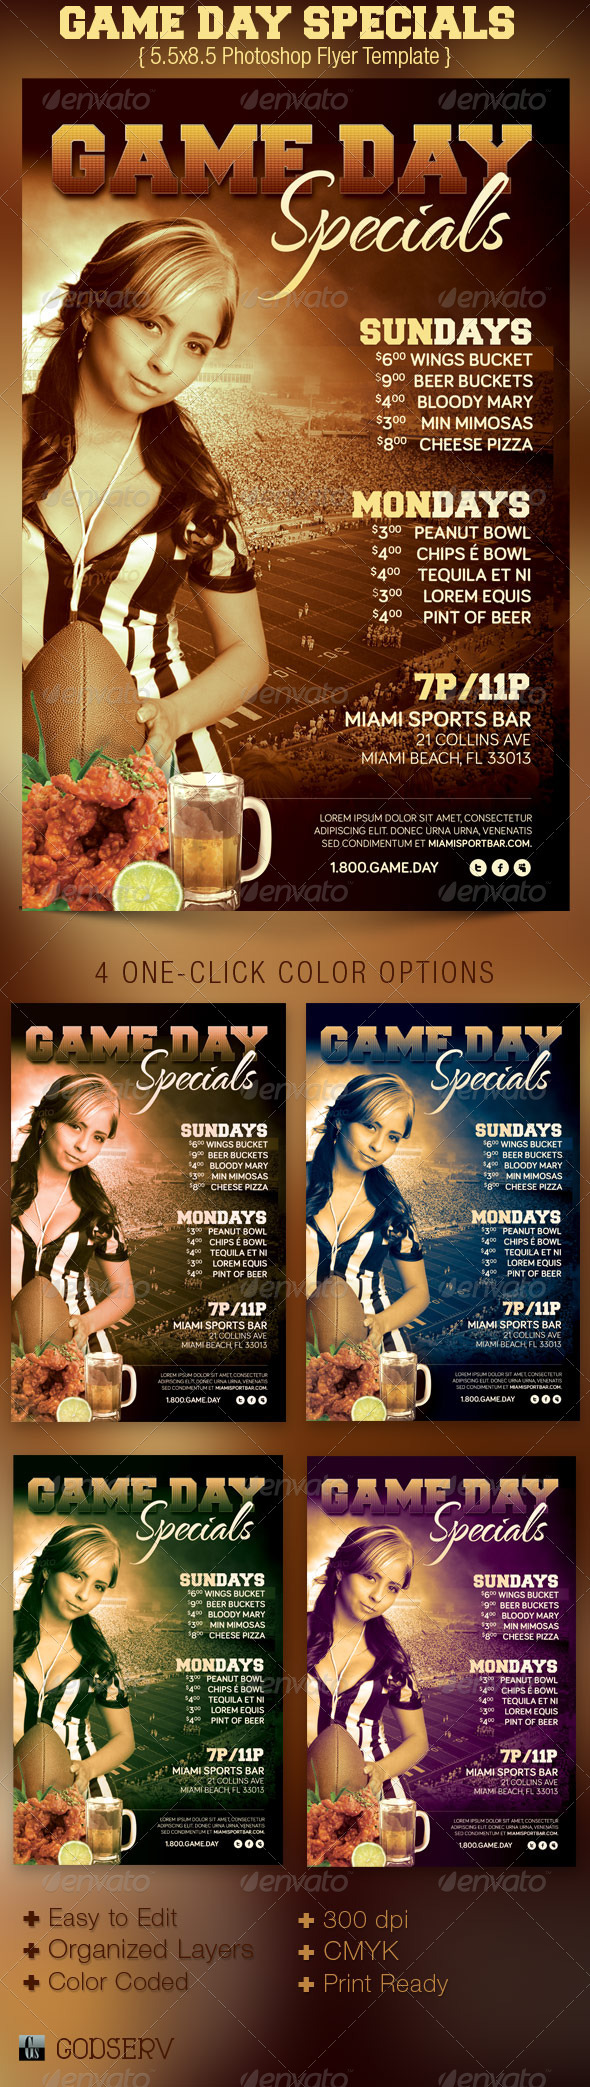 Game Day Specials Flyer Template - Sports Events